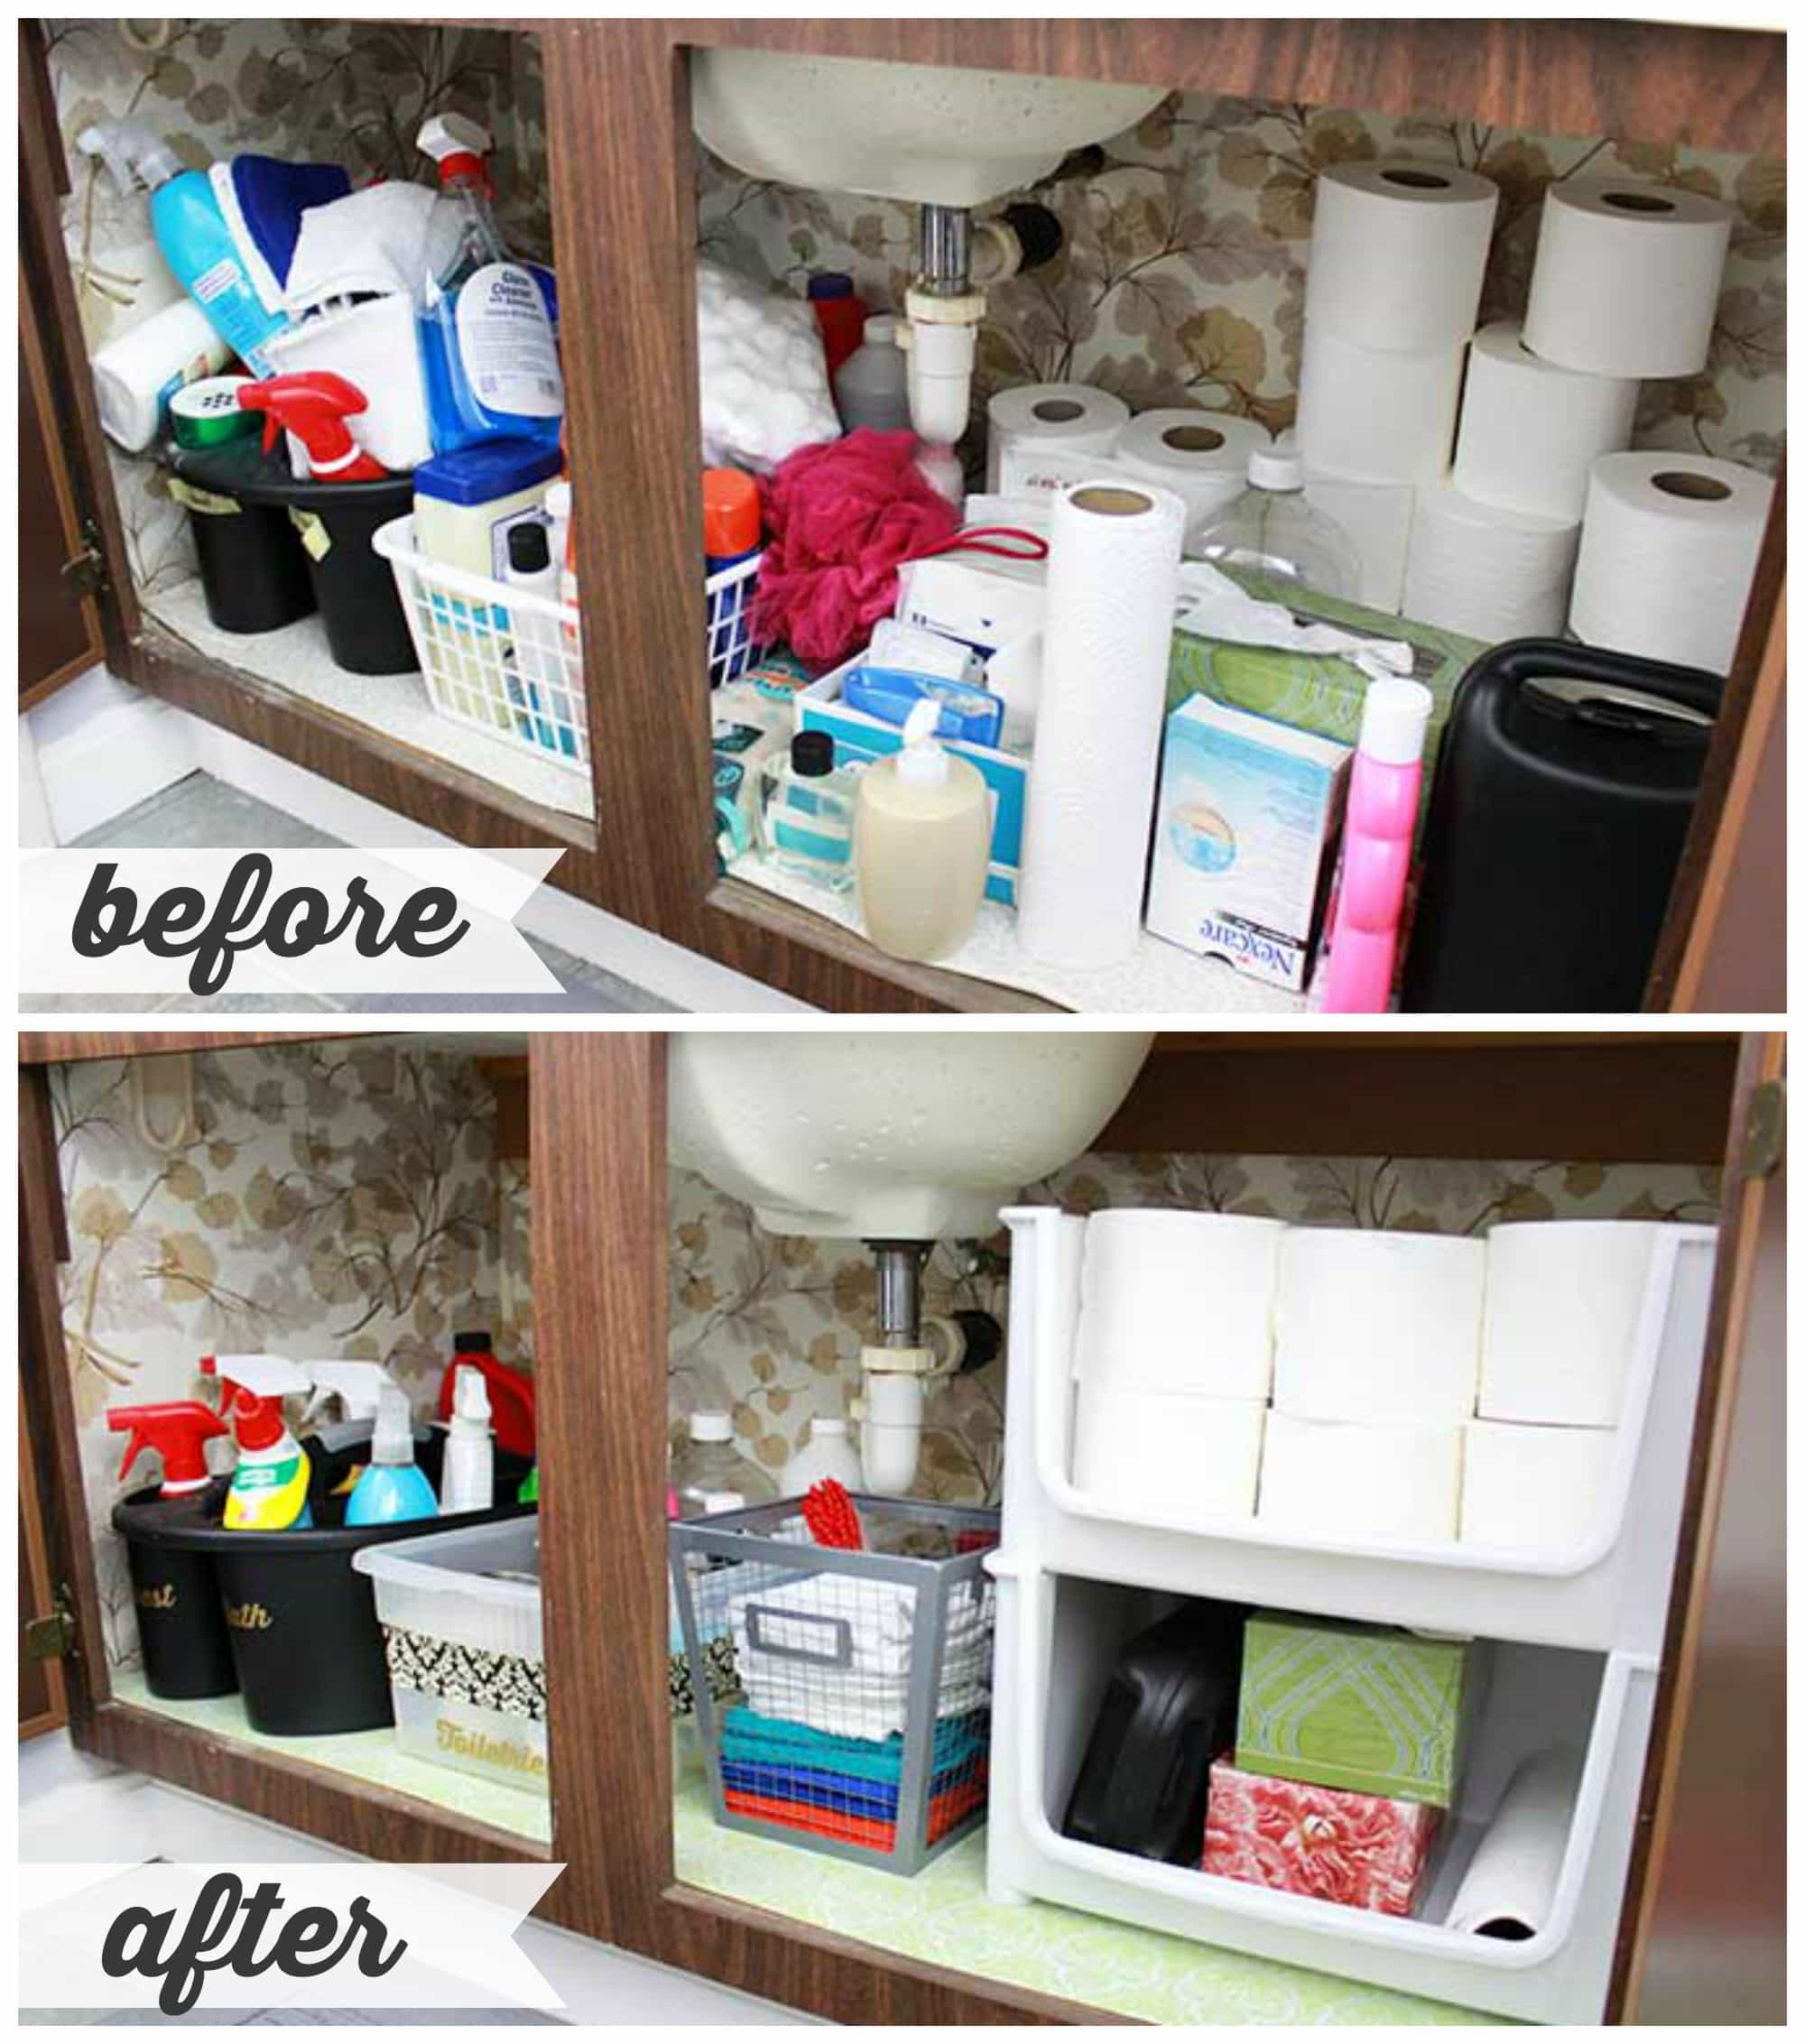 Merveilleux High/Low Bathroom Cabinet Organization | JustAGirlAndHerBlog.com